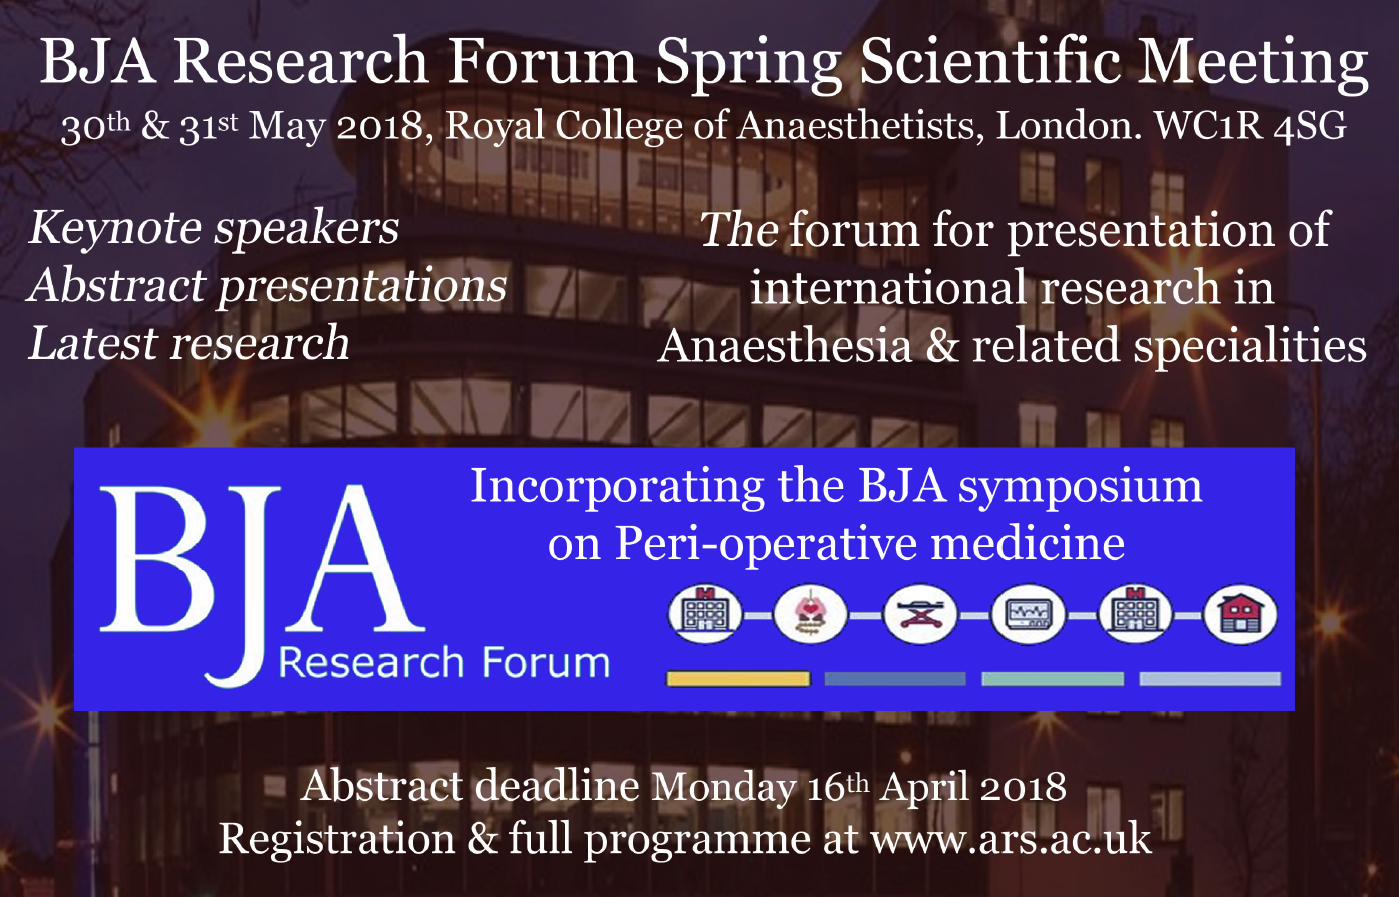 BJA Research Forum 2018